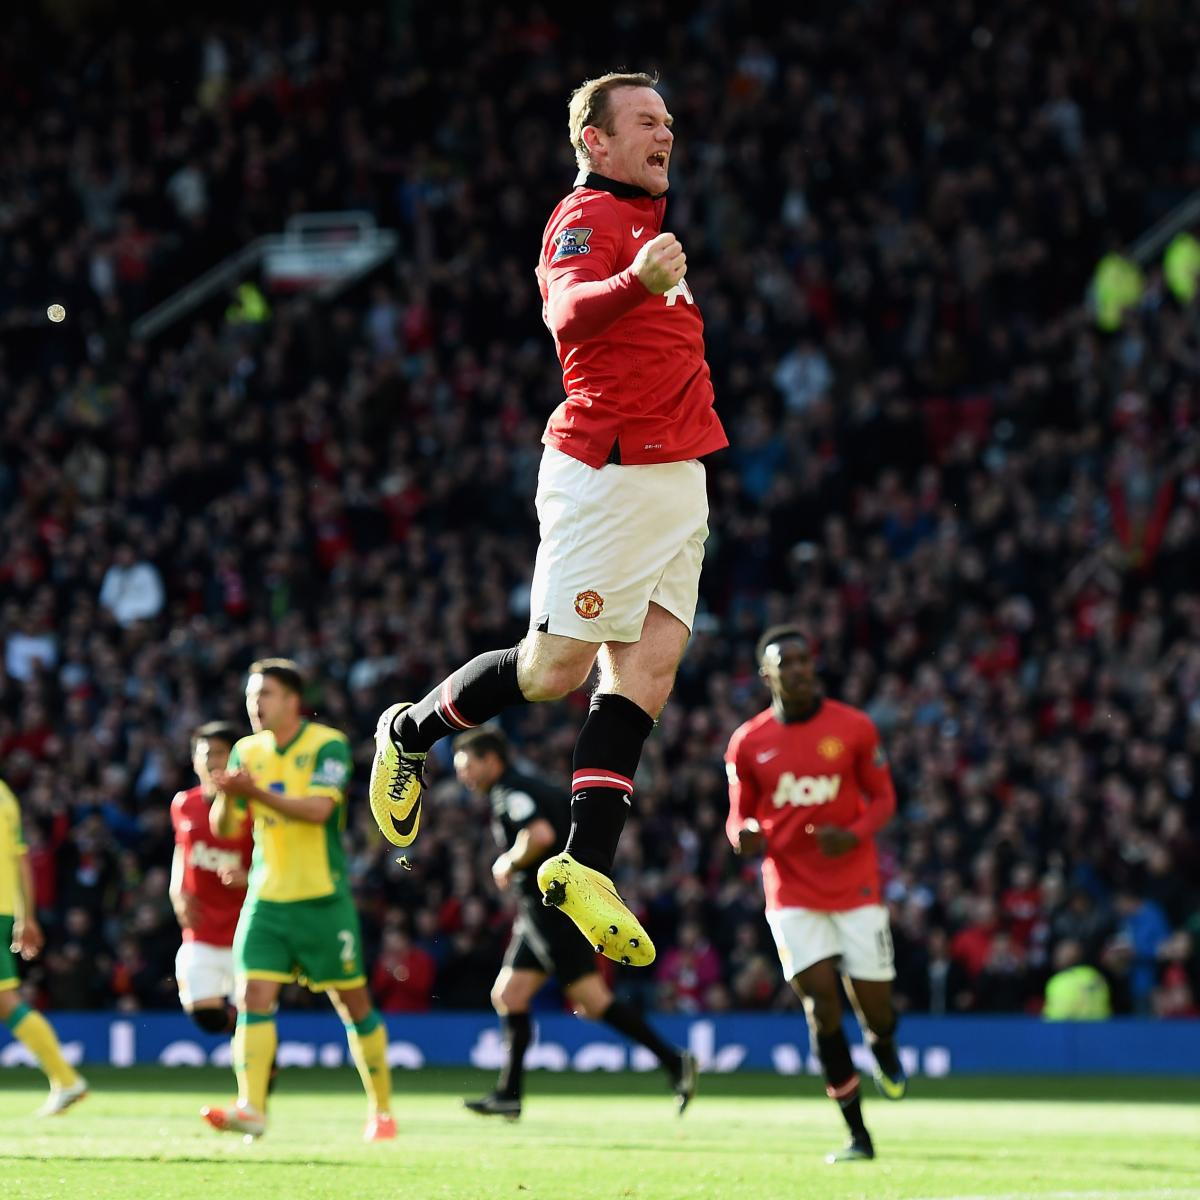 Barclays premier league table week 37 updated epl outlook - Barclays premier league ranking table ...